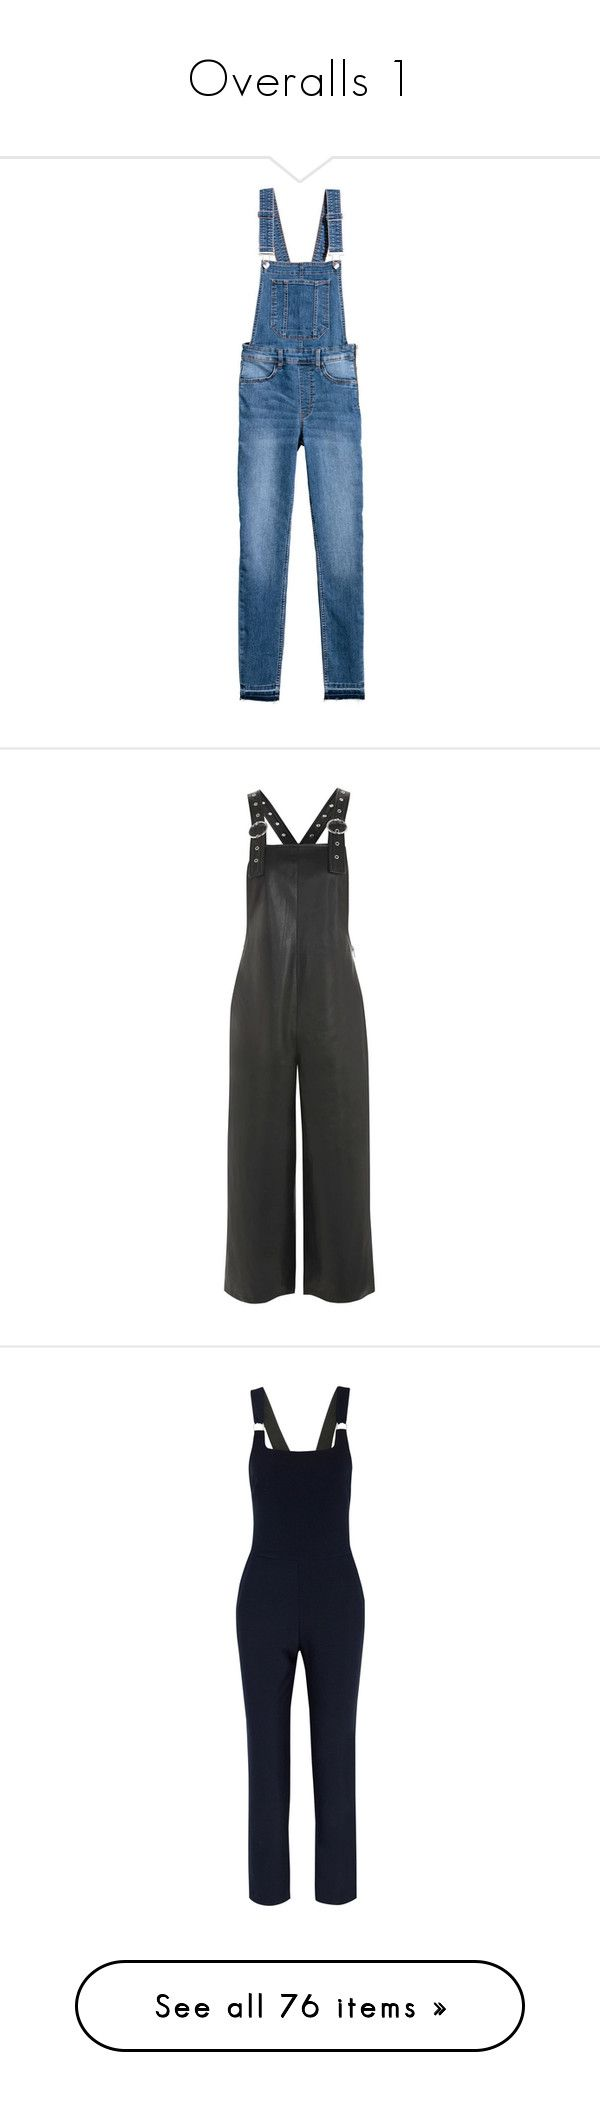 """""""Overalls 1"""" by cupkatyk ❤ liked on Polyvore featuring jumpsuits, overalls, denim bib overalls, denim jumpsuits, zip jumpsuit, overalls jumpsuit, blue denim overalls, jumpsuit, dresses and pants"""